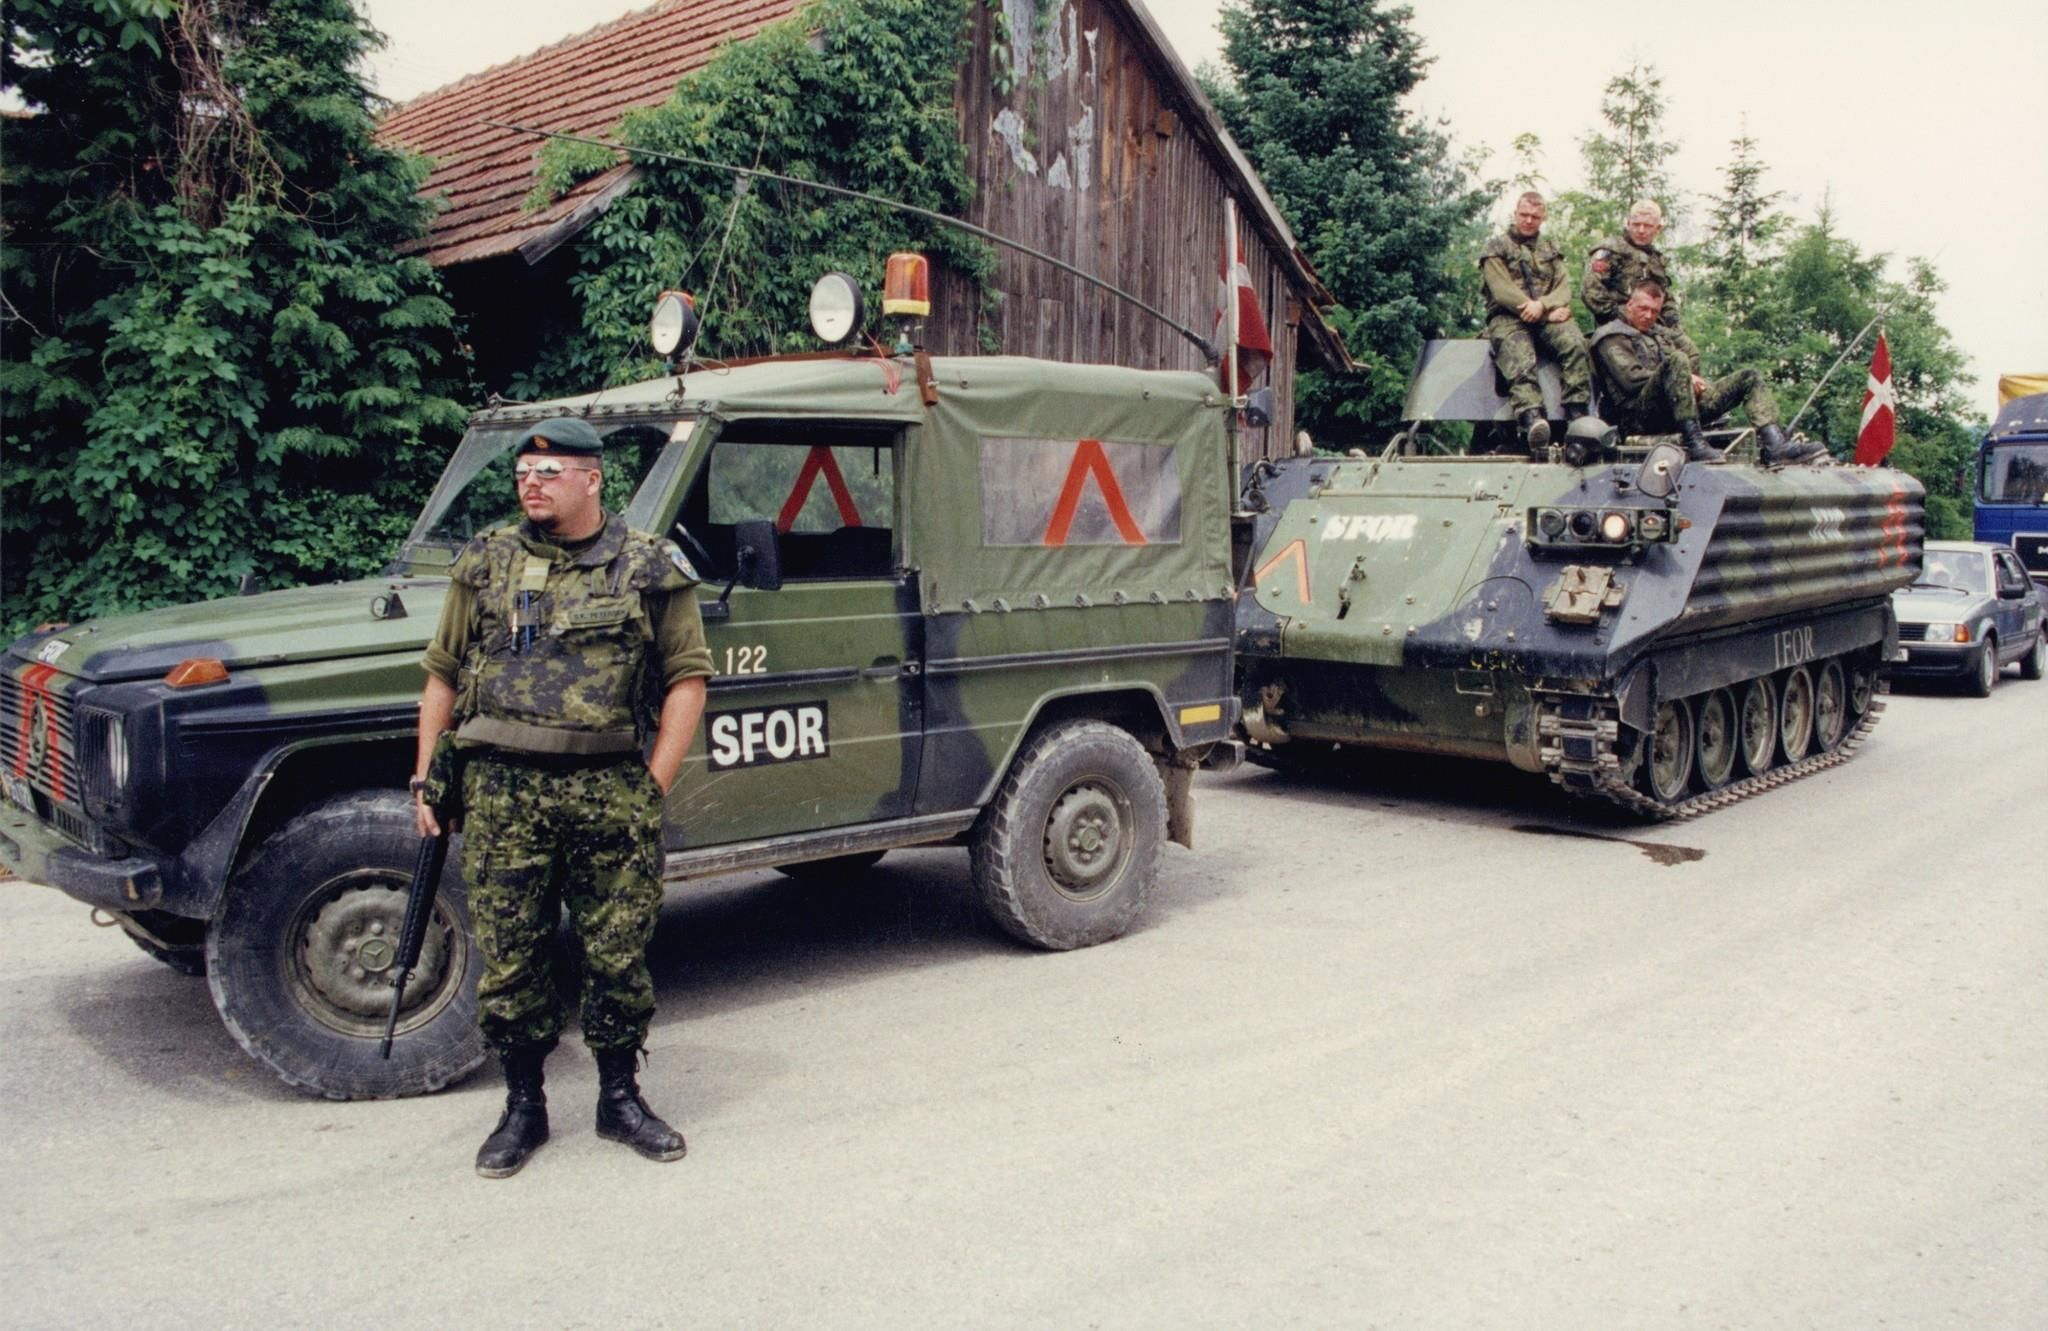 Stabilization Force (SFOR) in Bosnia in the mid 1990s after the Bosnian War. M113 and Mercedes Geländewagen.